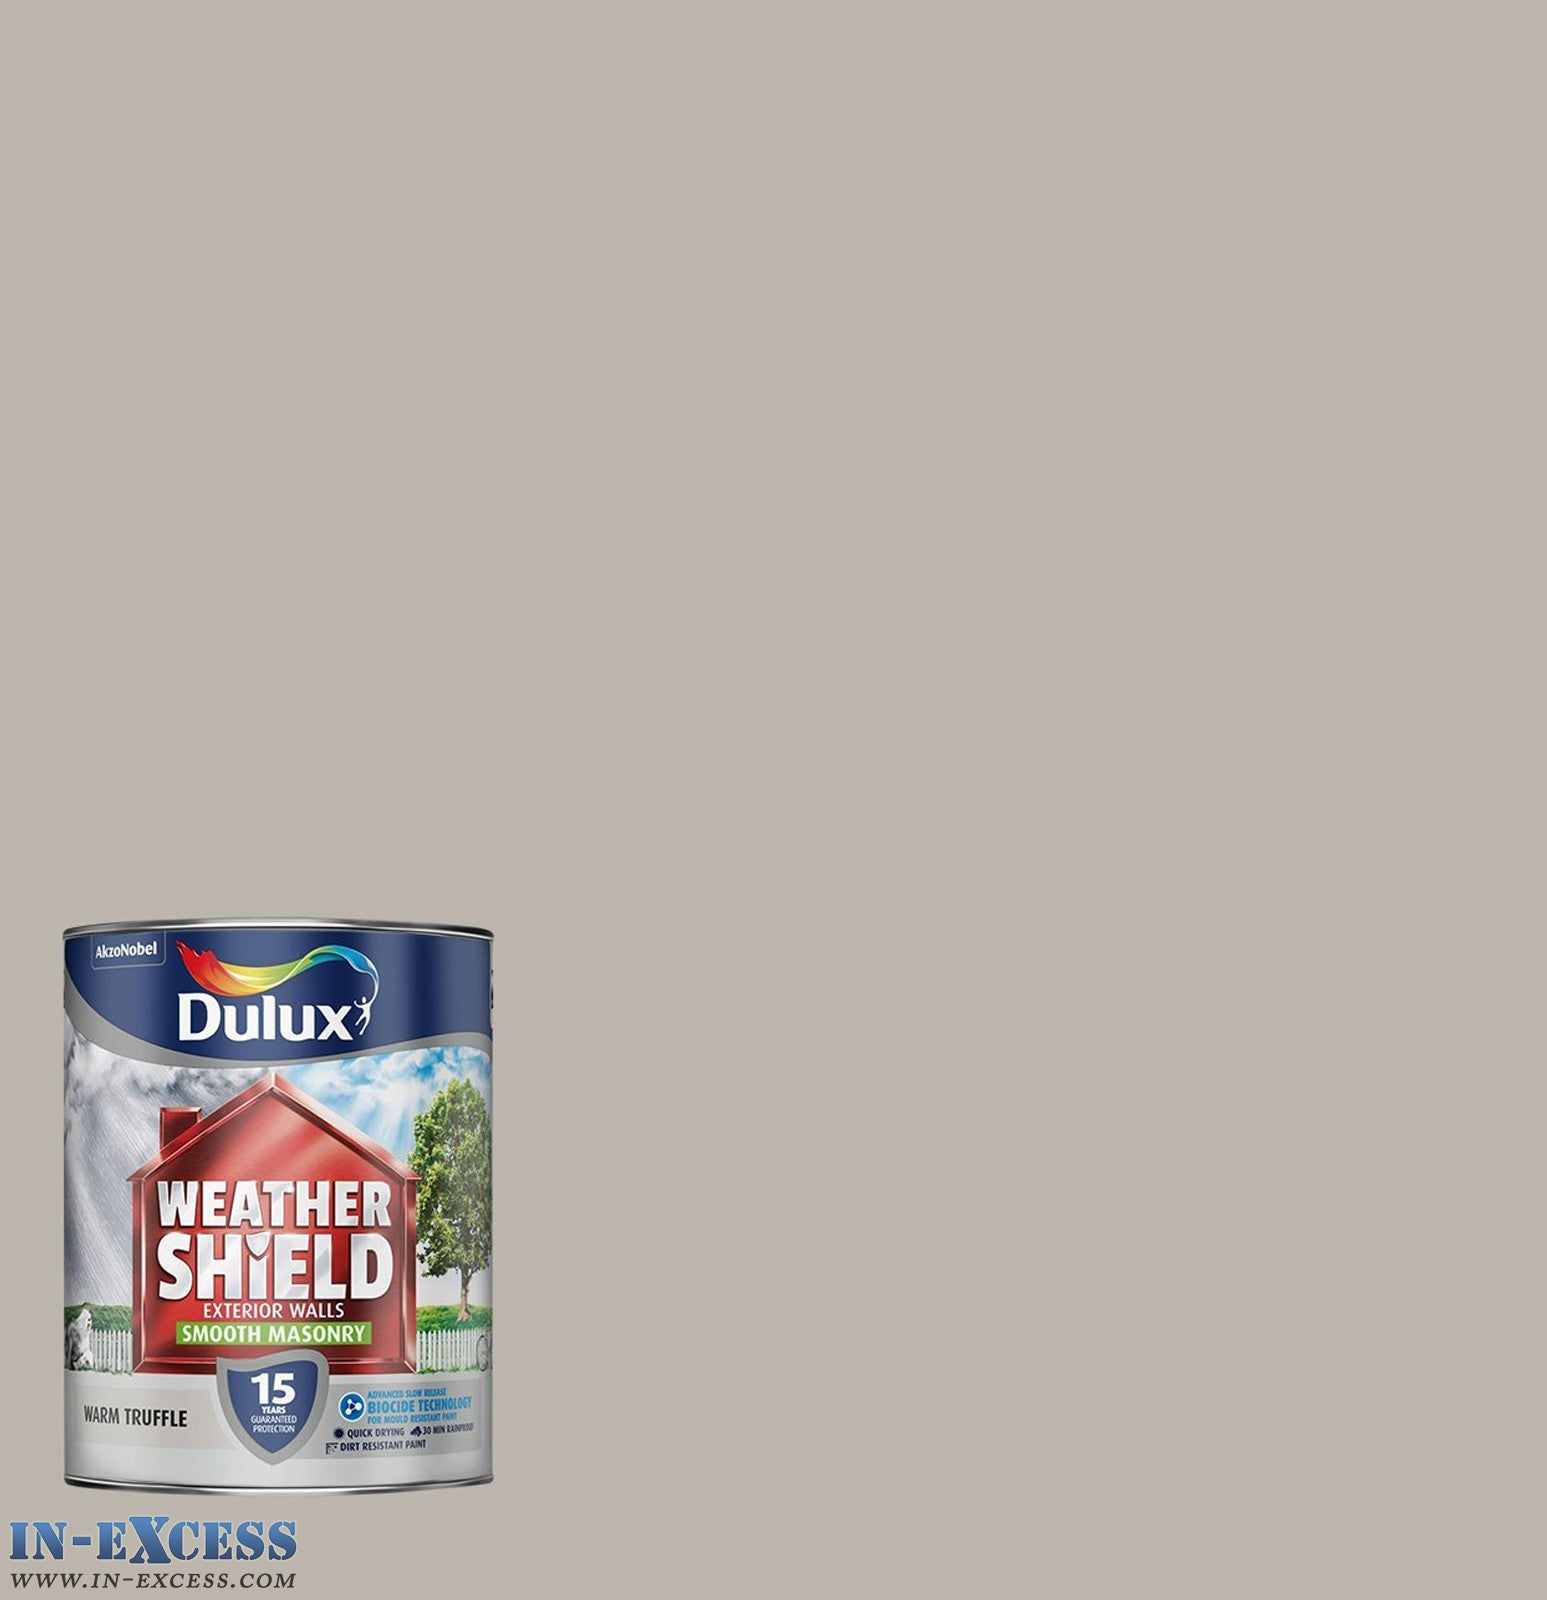 Dulux weather shield exterior walls masonry paint smooth warm truffl in excess direct - Exterior textured masonry paint model ...